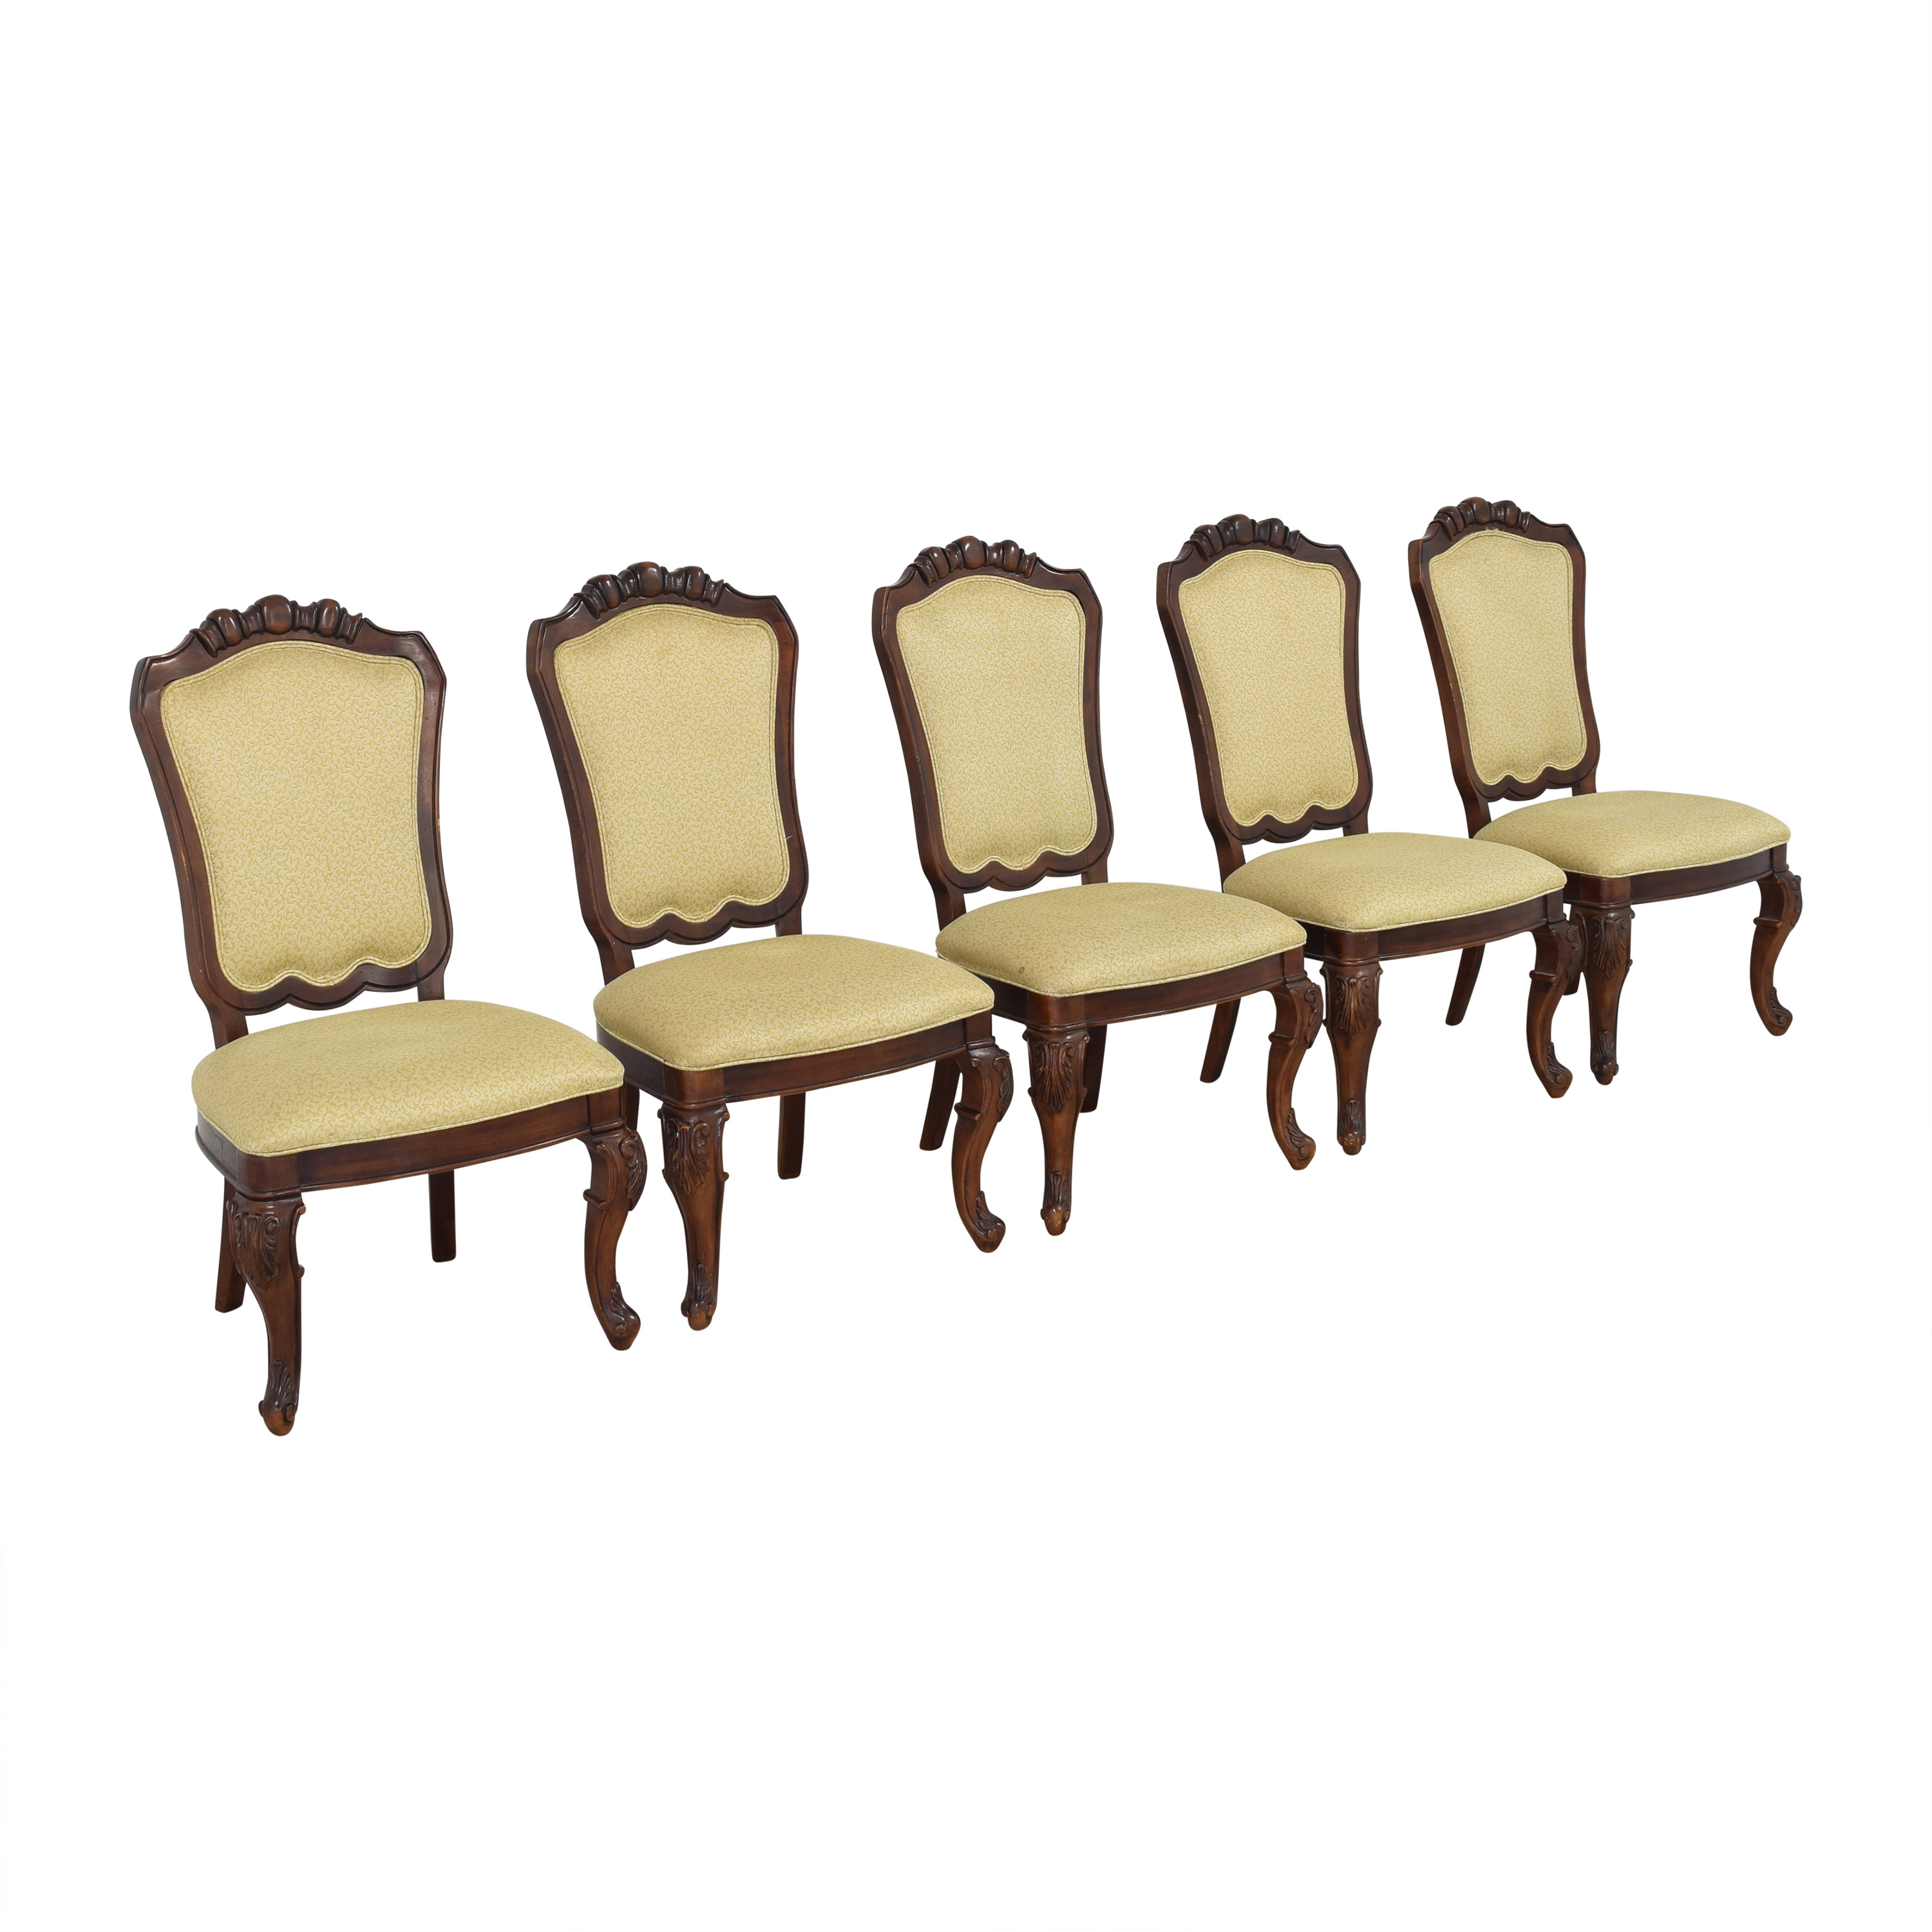 Thomasville Thomasville Upholstered Dining Side Chairs ma